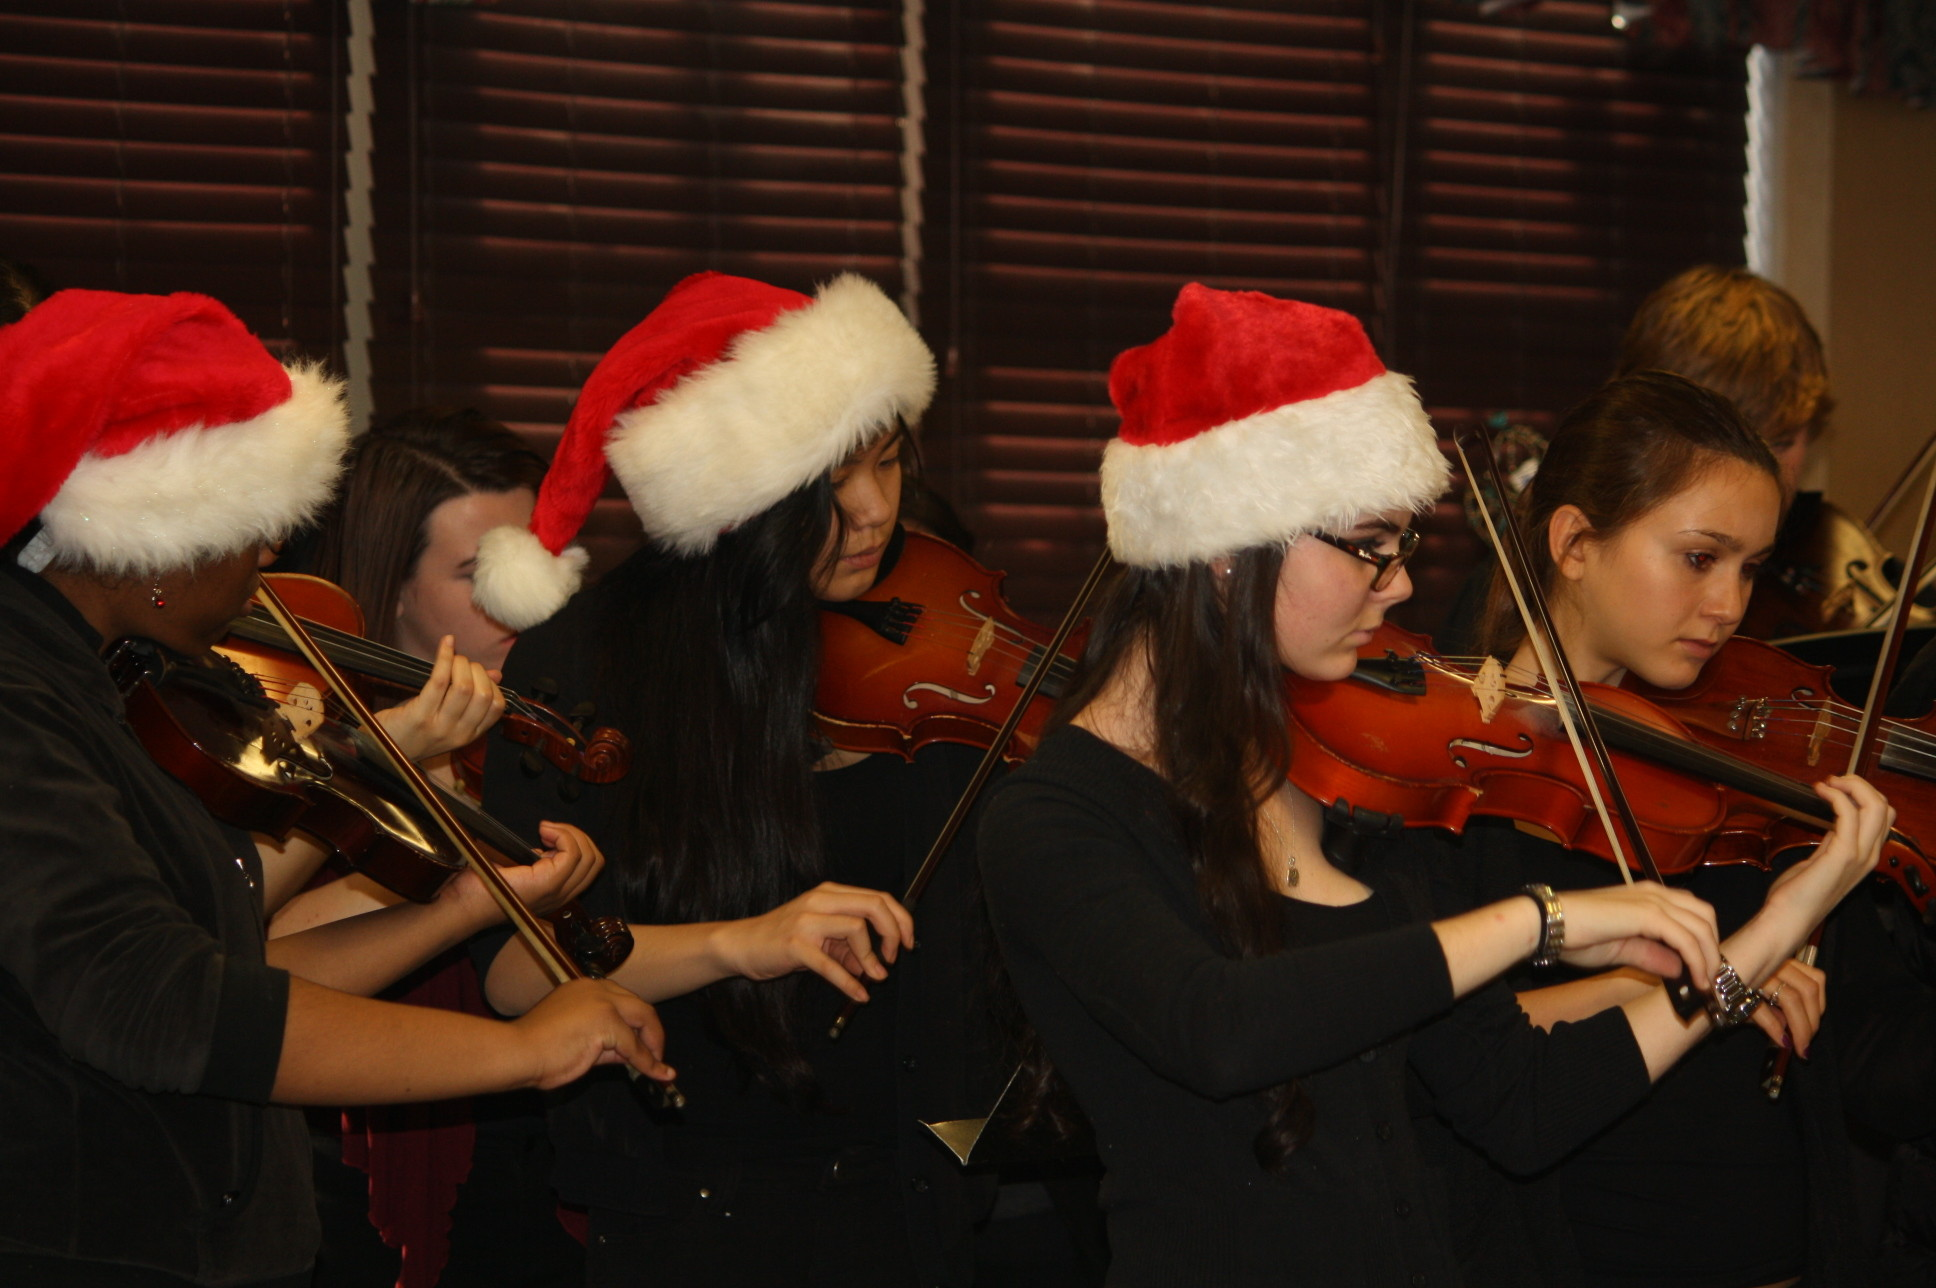 The Long Beach High School chamber orchestra performed a festive holiday concert for guests at the Grandell Rehabilitation and Nursing Center in Long Beach.